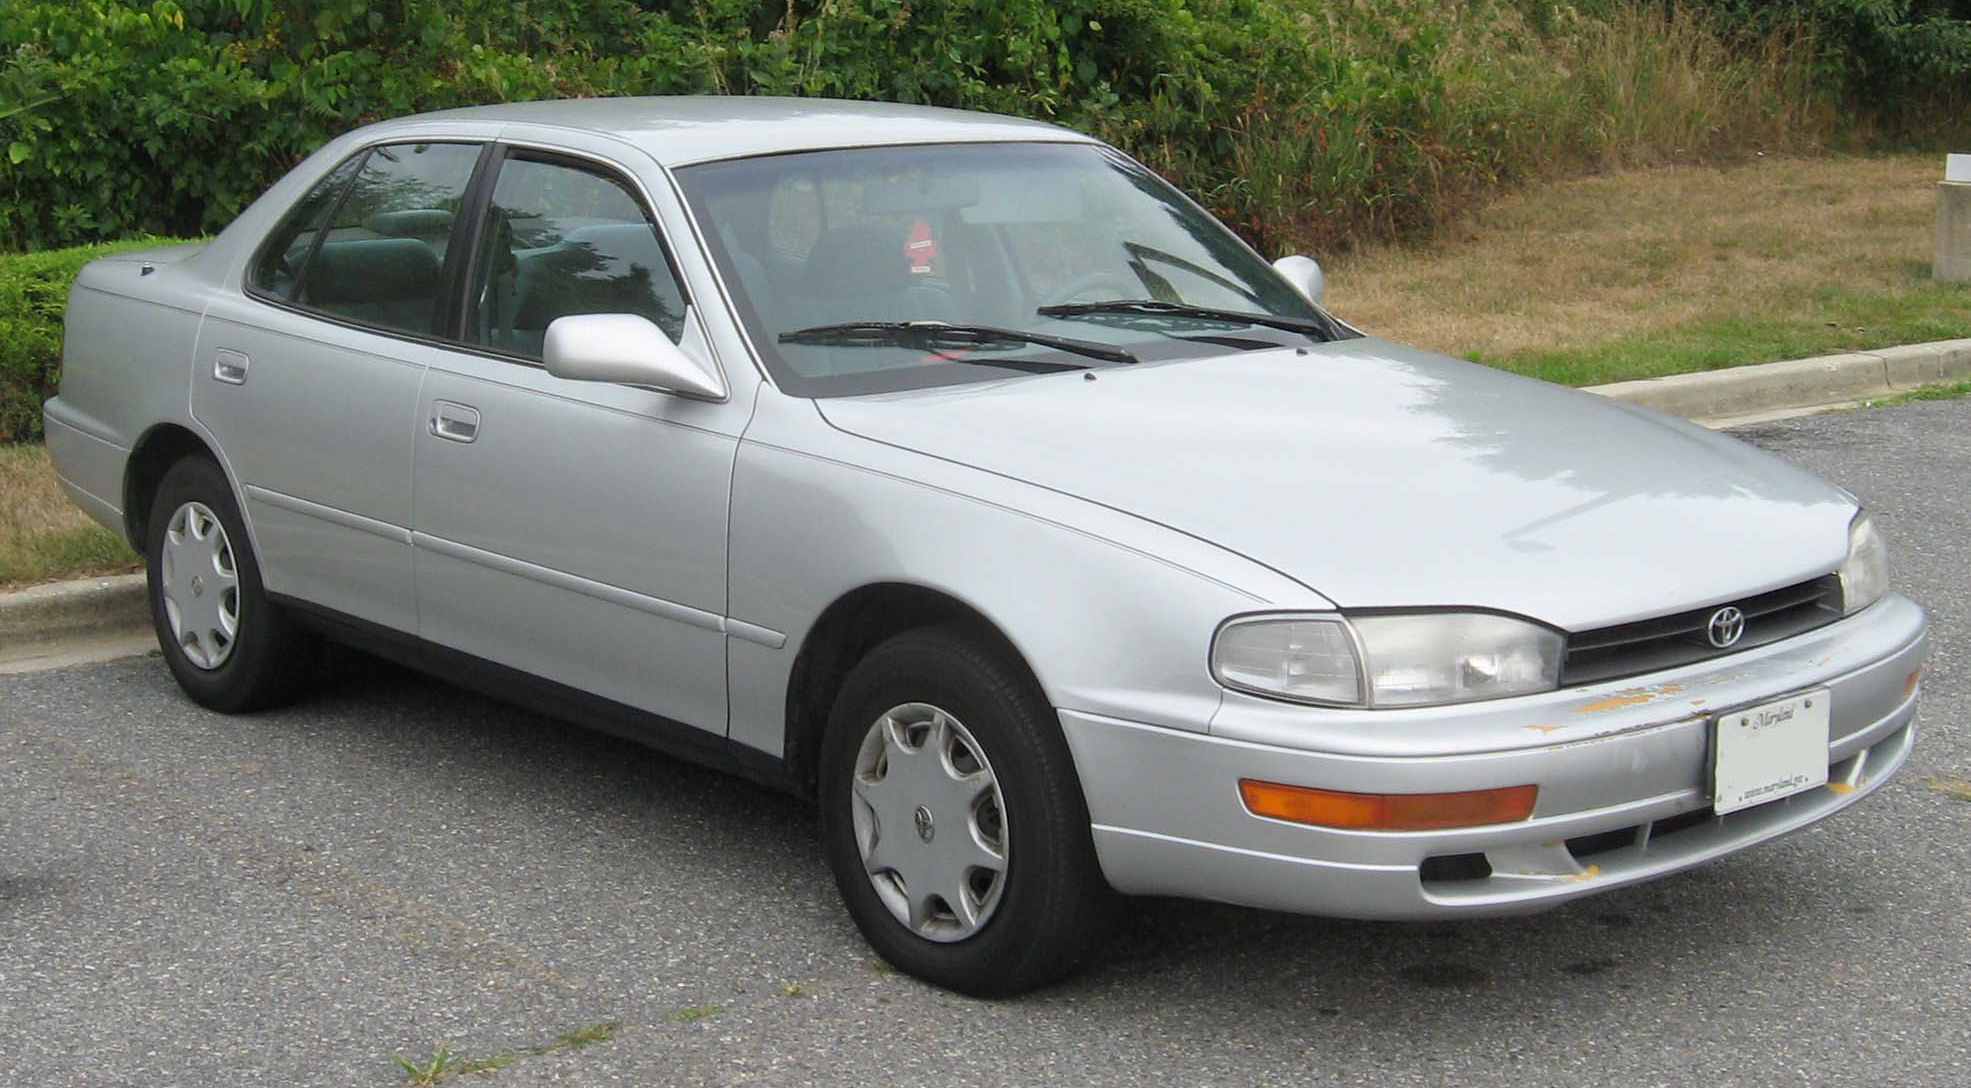 Toyota Scepter 1992 - 1996 Station wagon 5 door #4